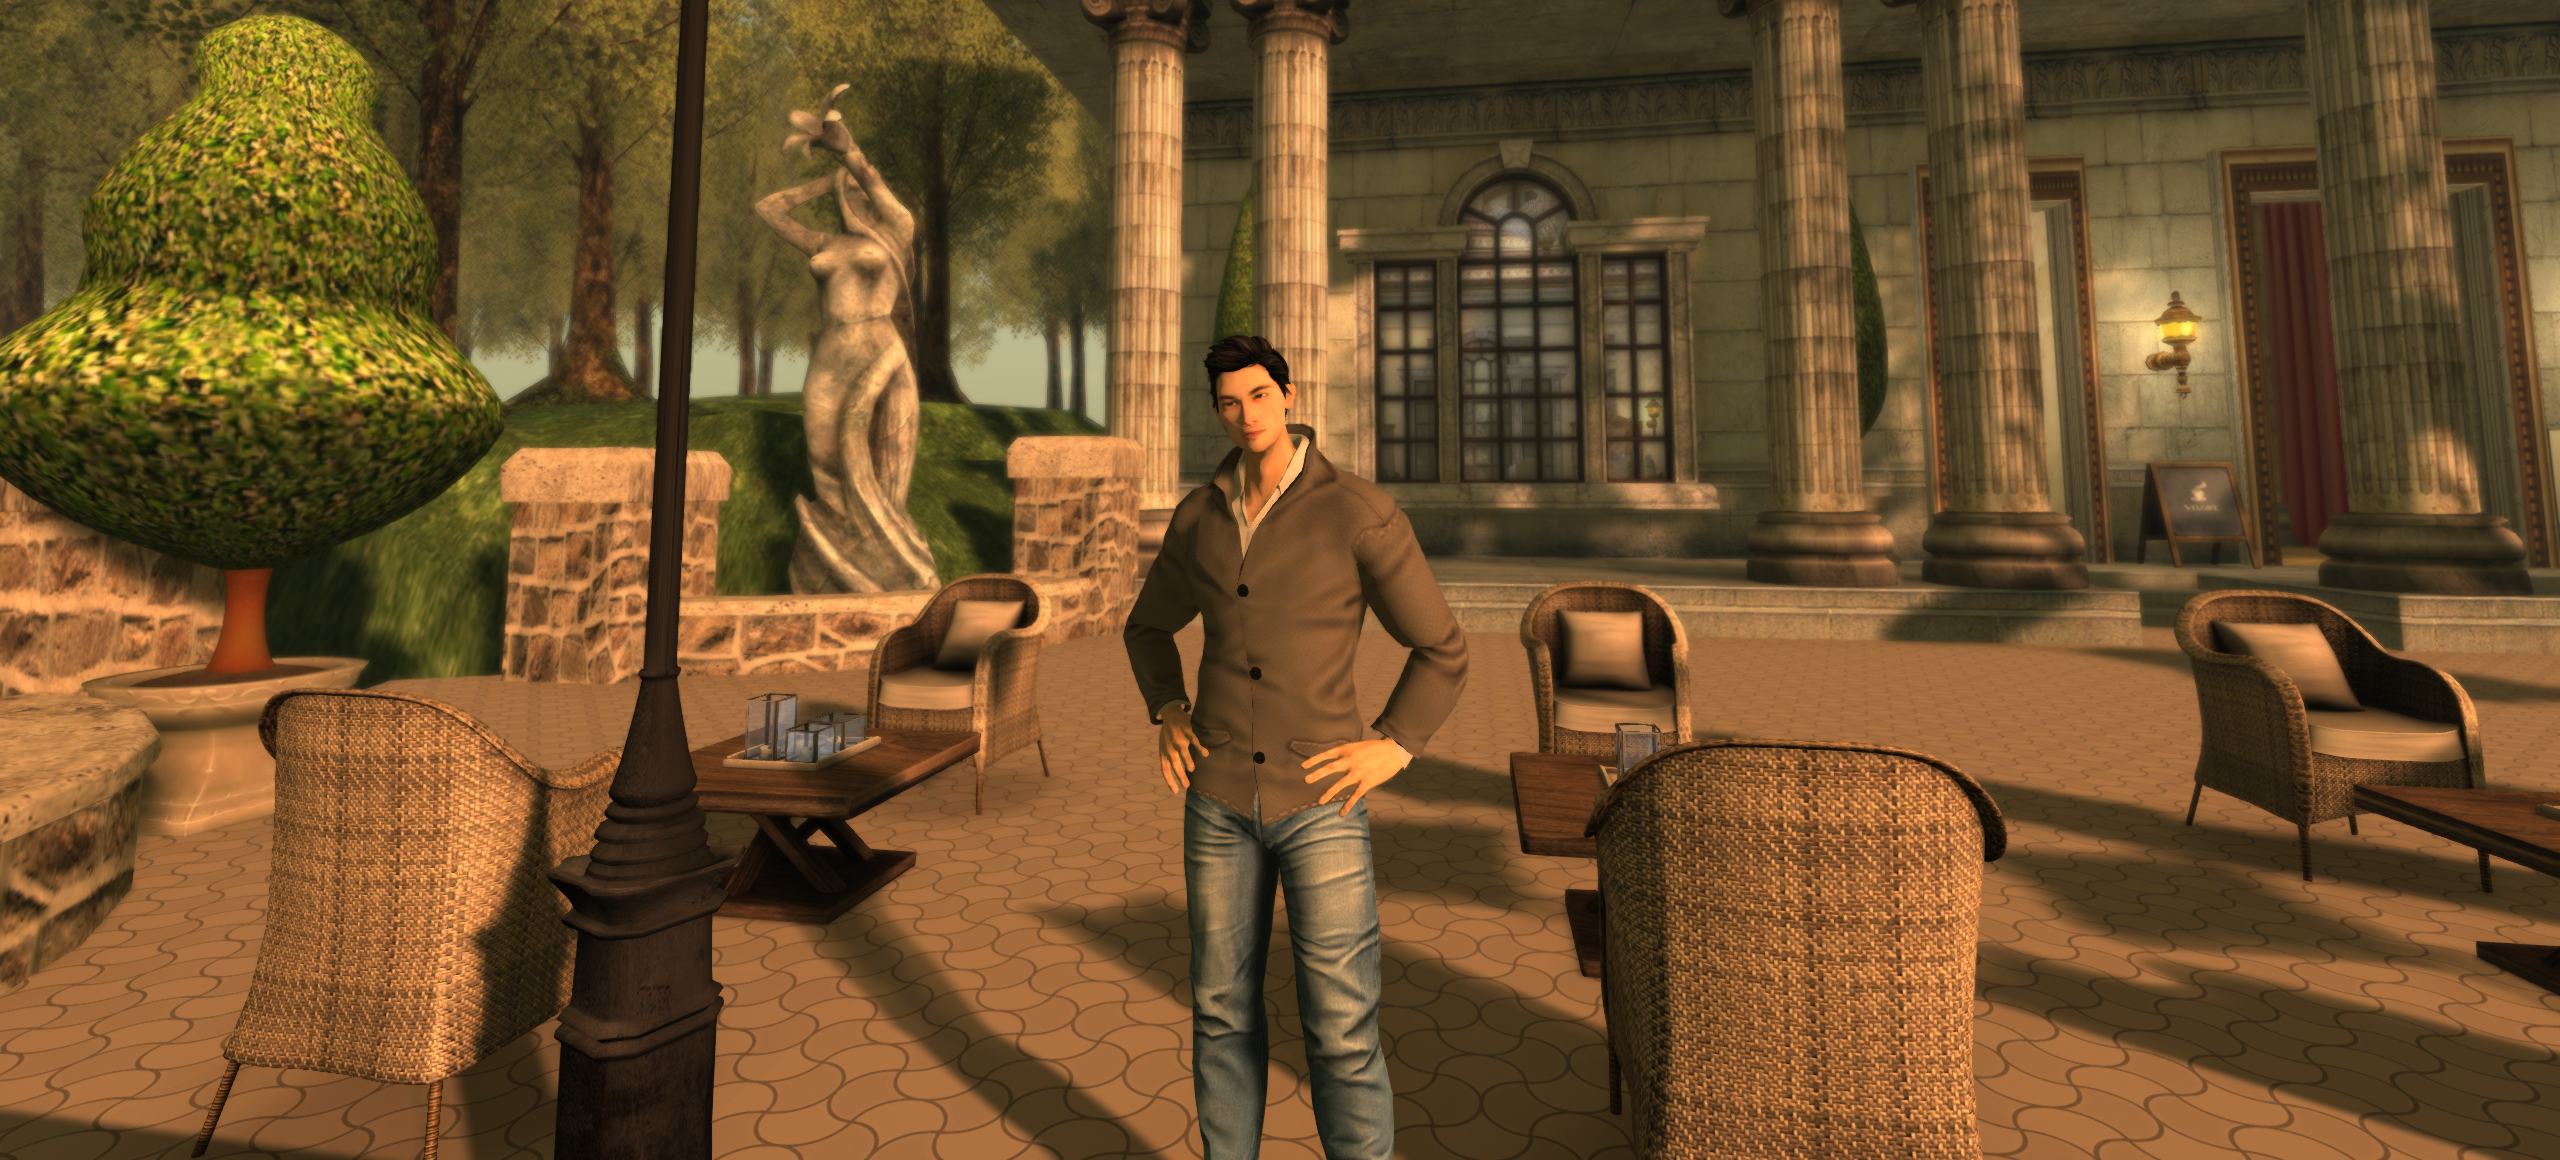 I Explored Second Life's Forgotten Worlds With An Oculus